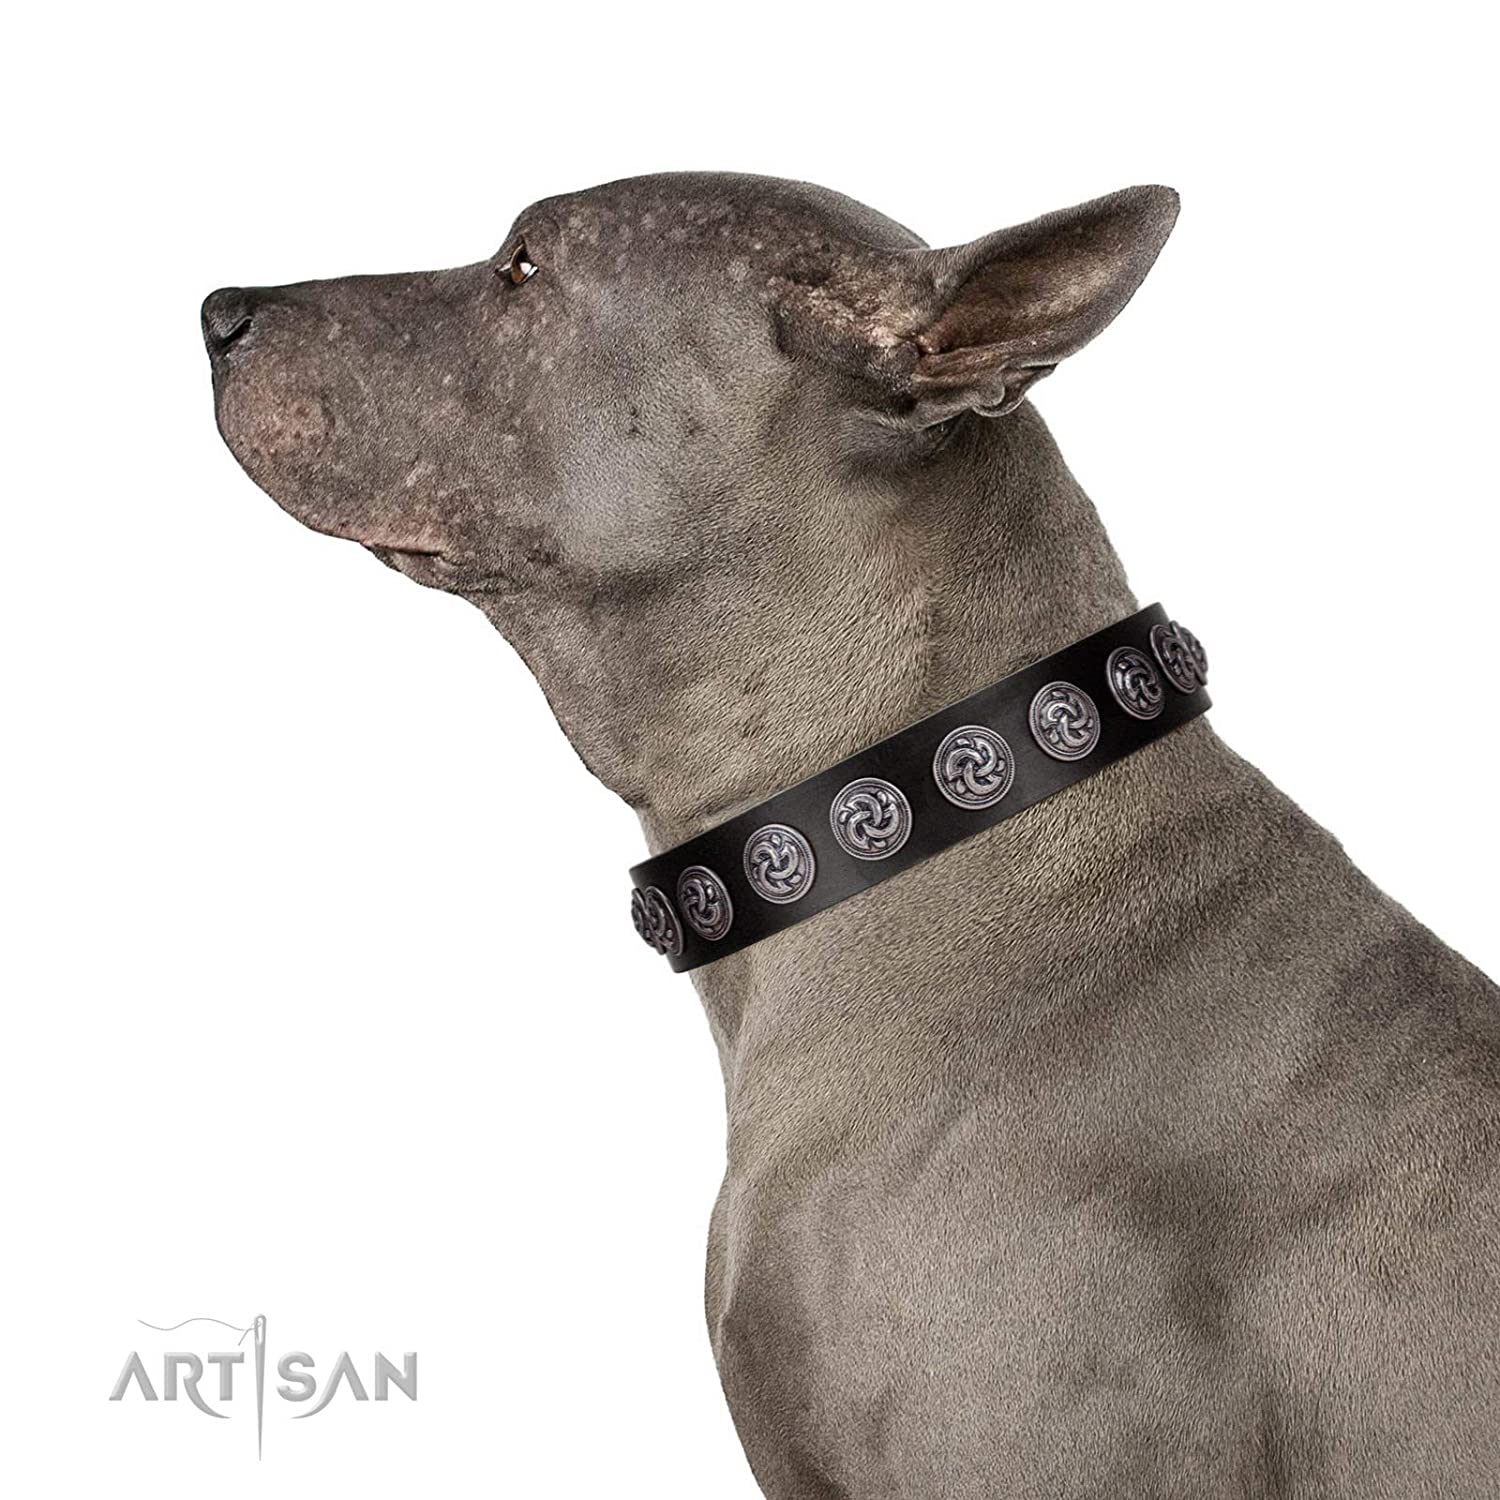 Fits for 26 inch (65cm) dog's neck size FDT Artisan 26 inch Black Raven Handmade Designer Black Leather Dog Collar with Silver-Like Adornments 1 1 2 inch (40 cm) Wide Gift Box Included